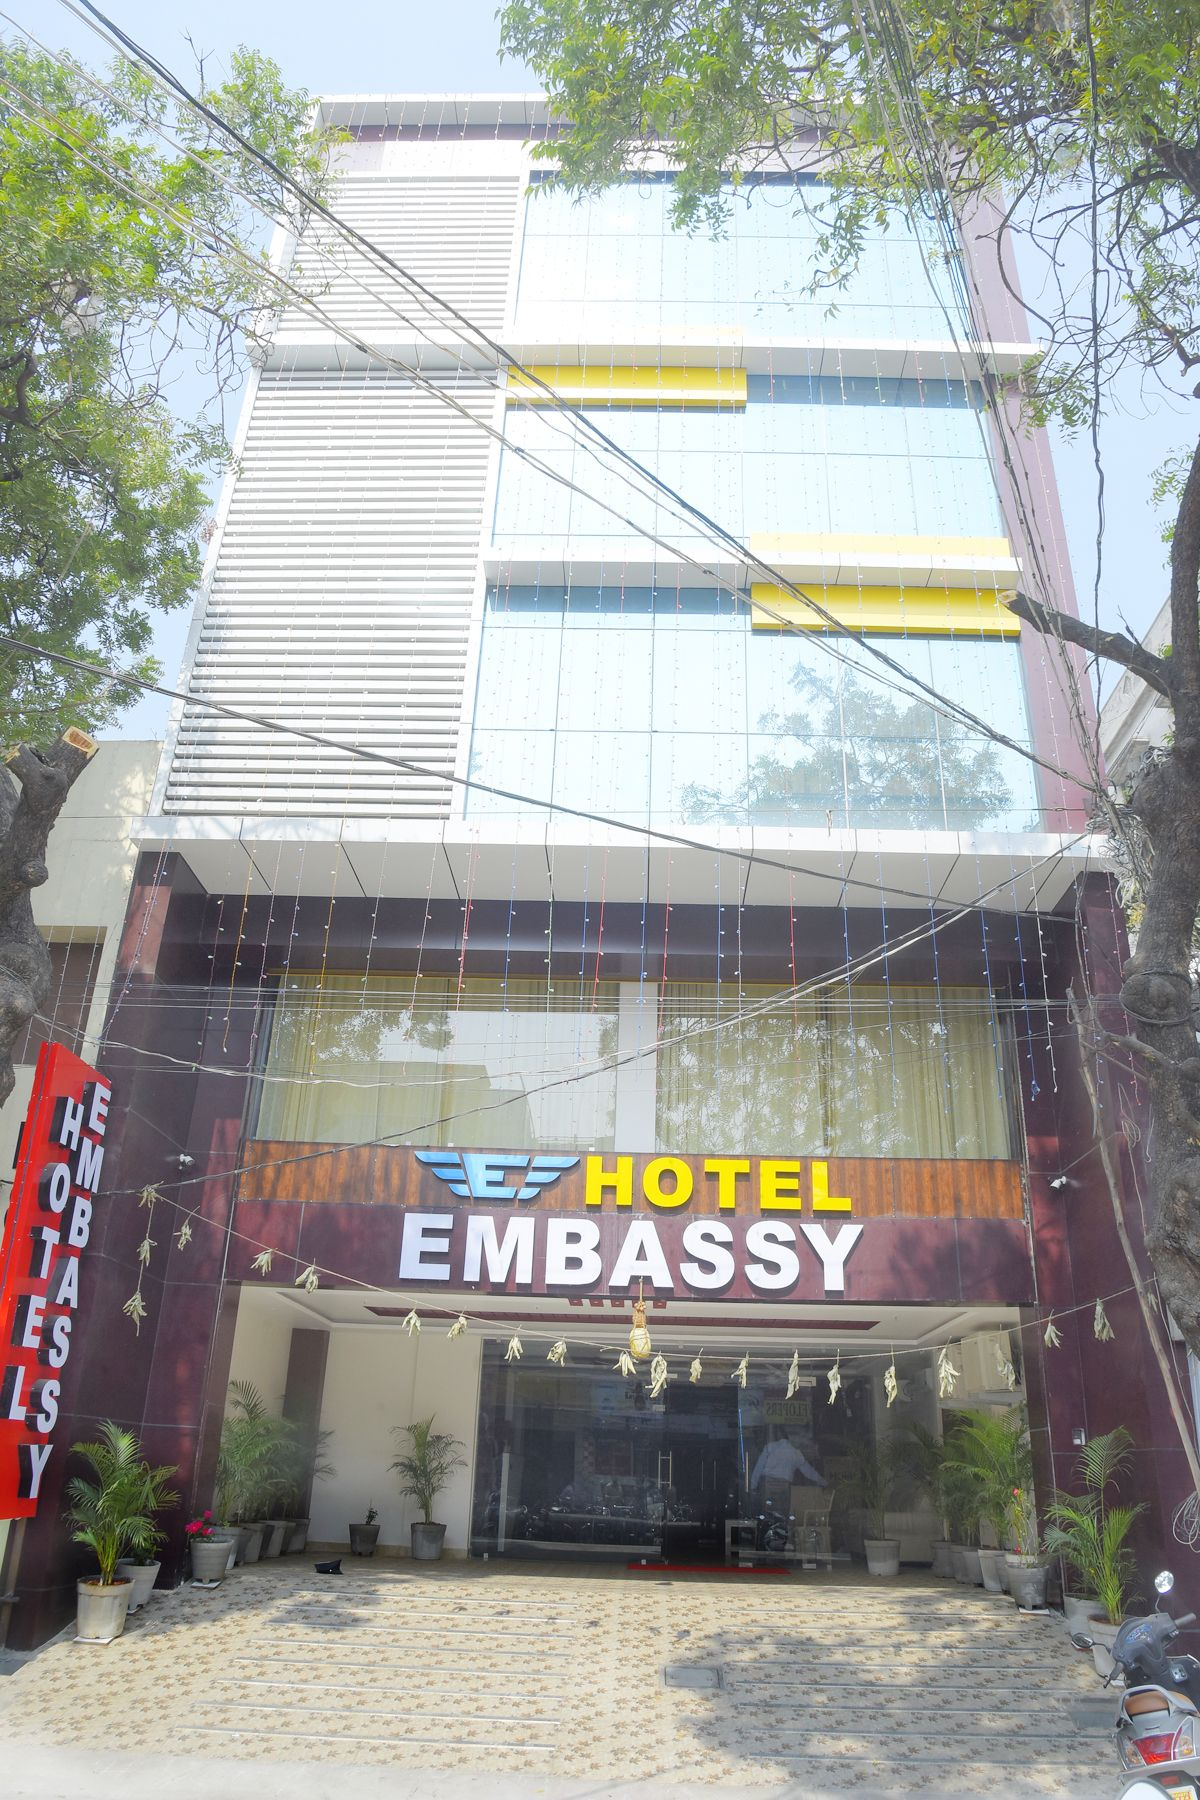 The Embassy Hotel Is Arranged In One Of The Most Begrudged Areas